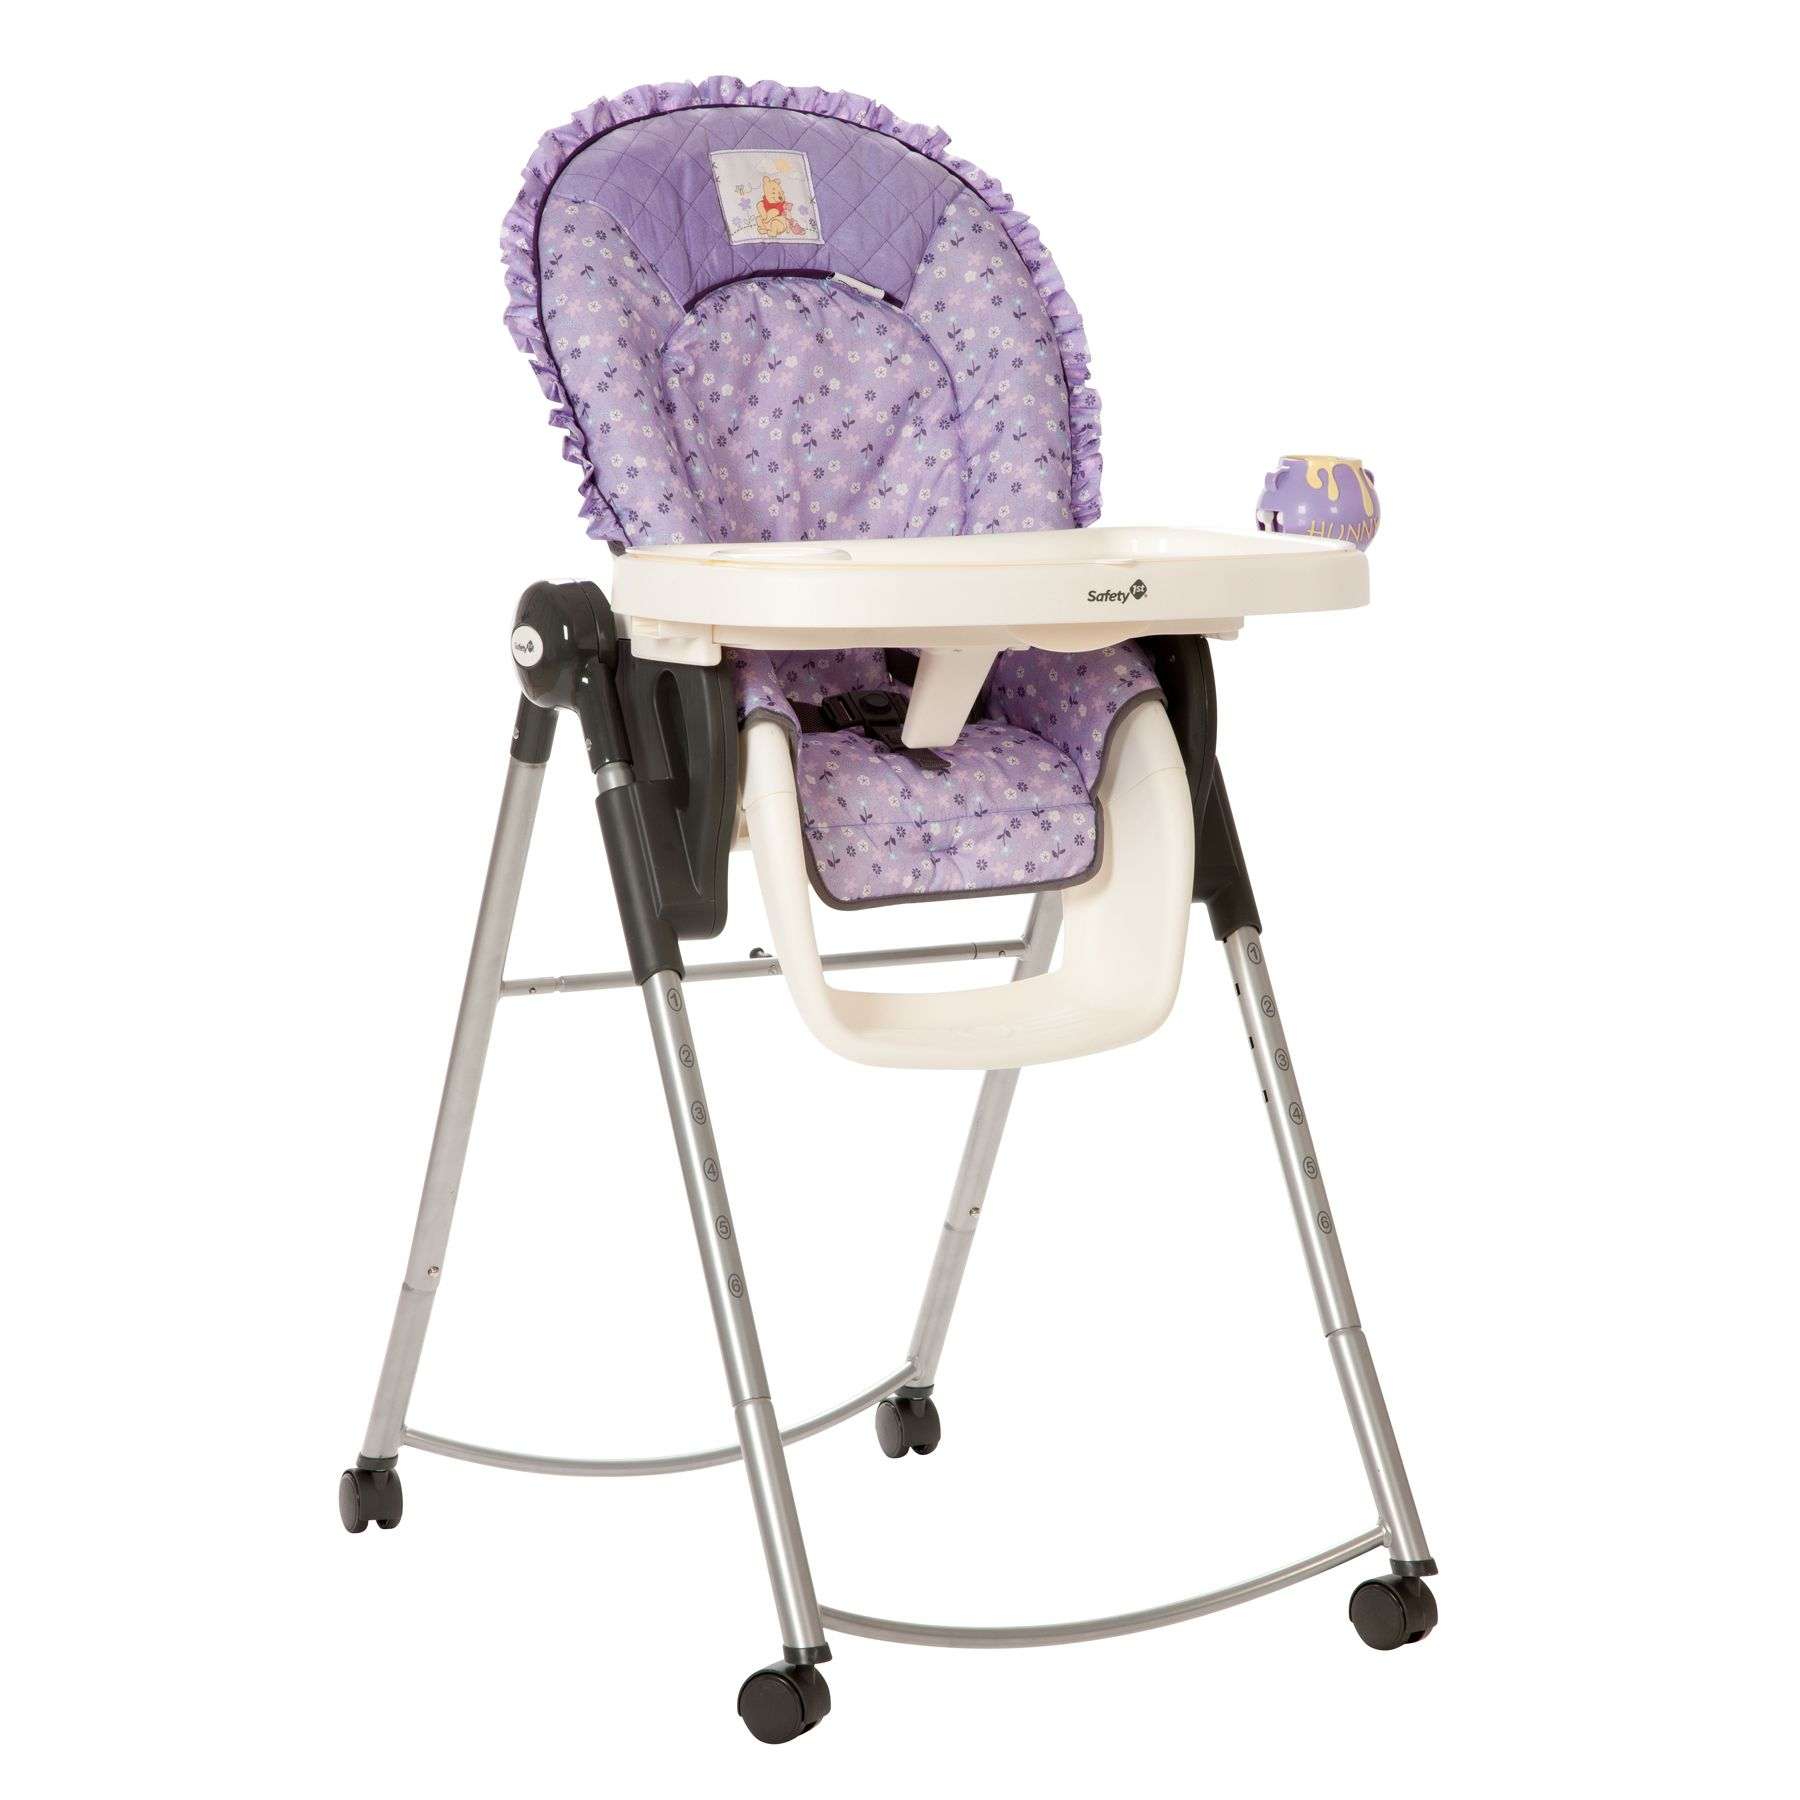 pooh's garden adjustable high chair from safety 1st | baby shower